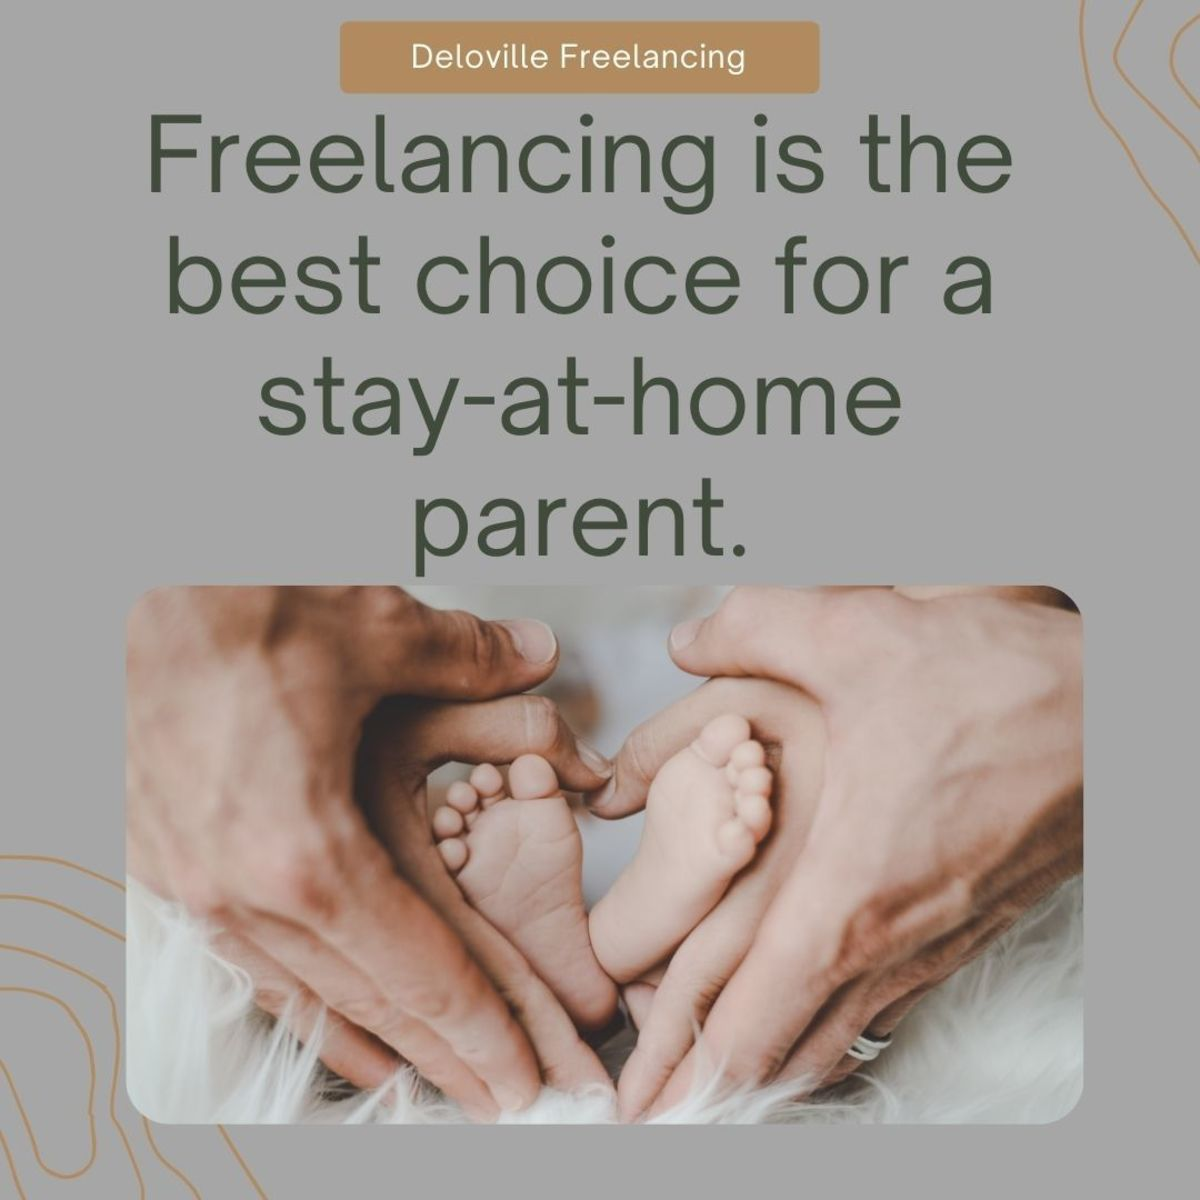 Freelancing Is the Best Choice for Stay-at-Home Parent